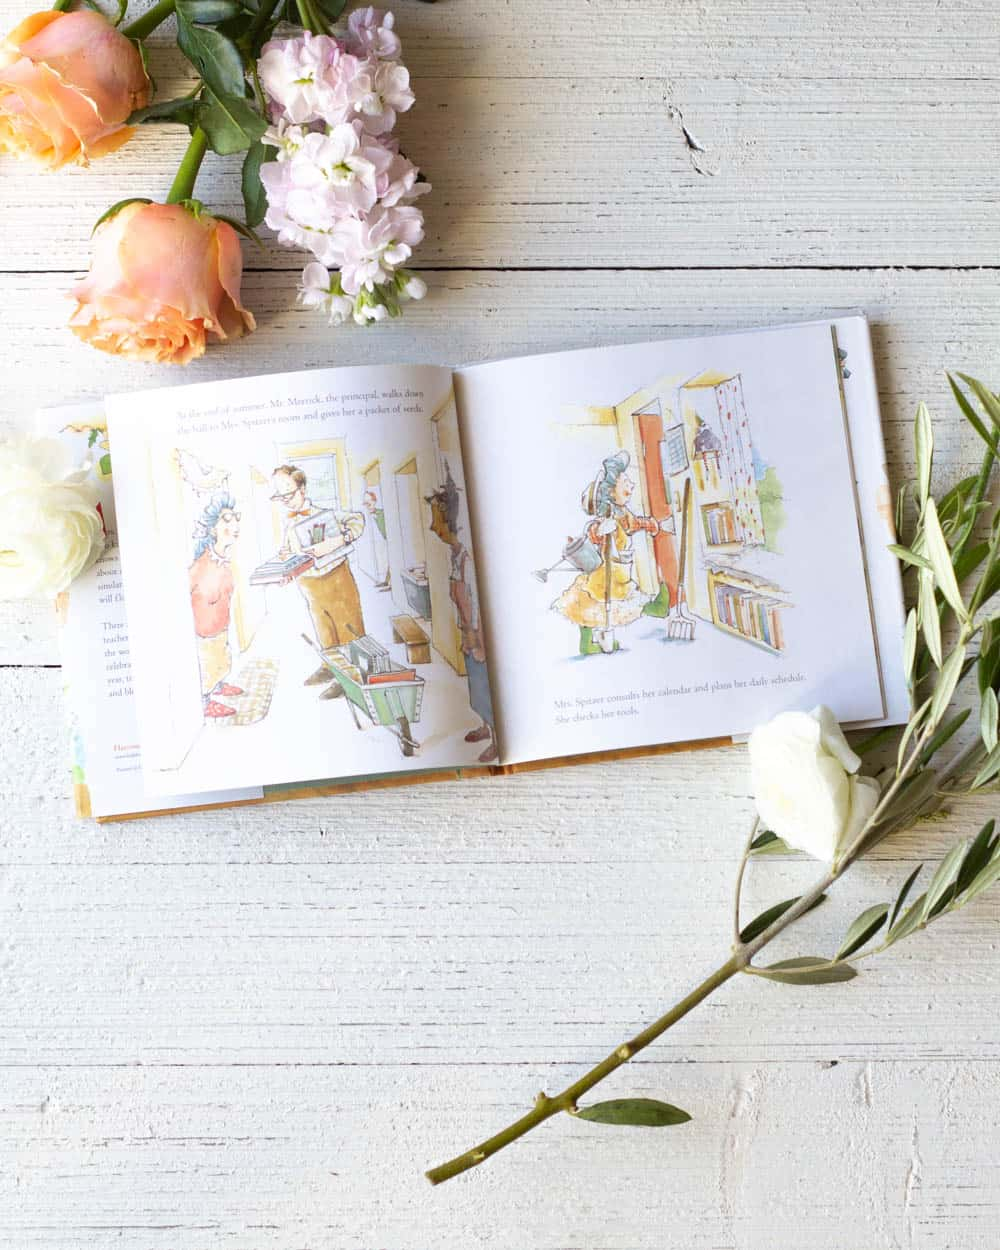 Interior pages of a picture book about gardening and teachers.